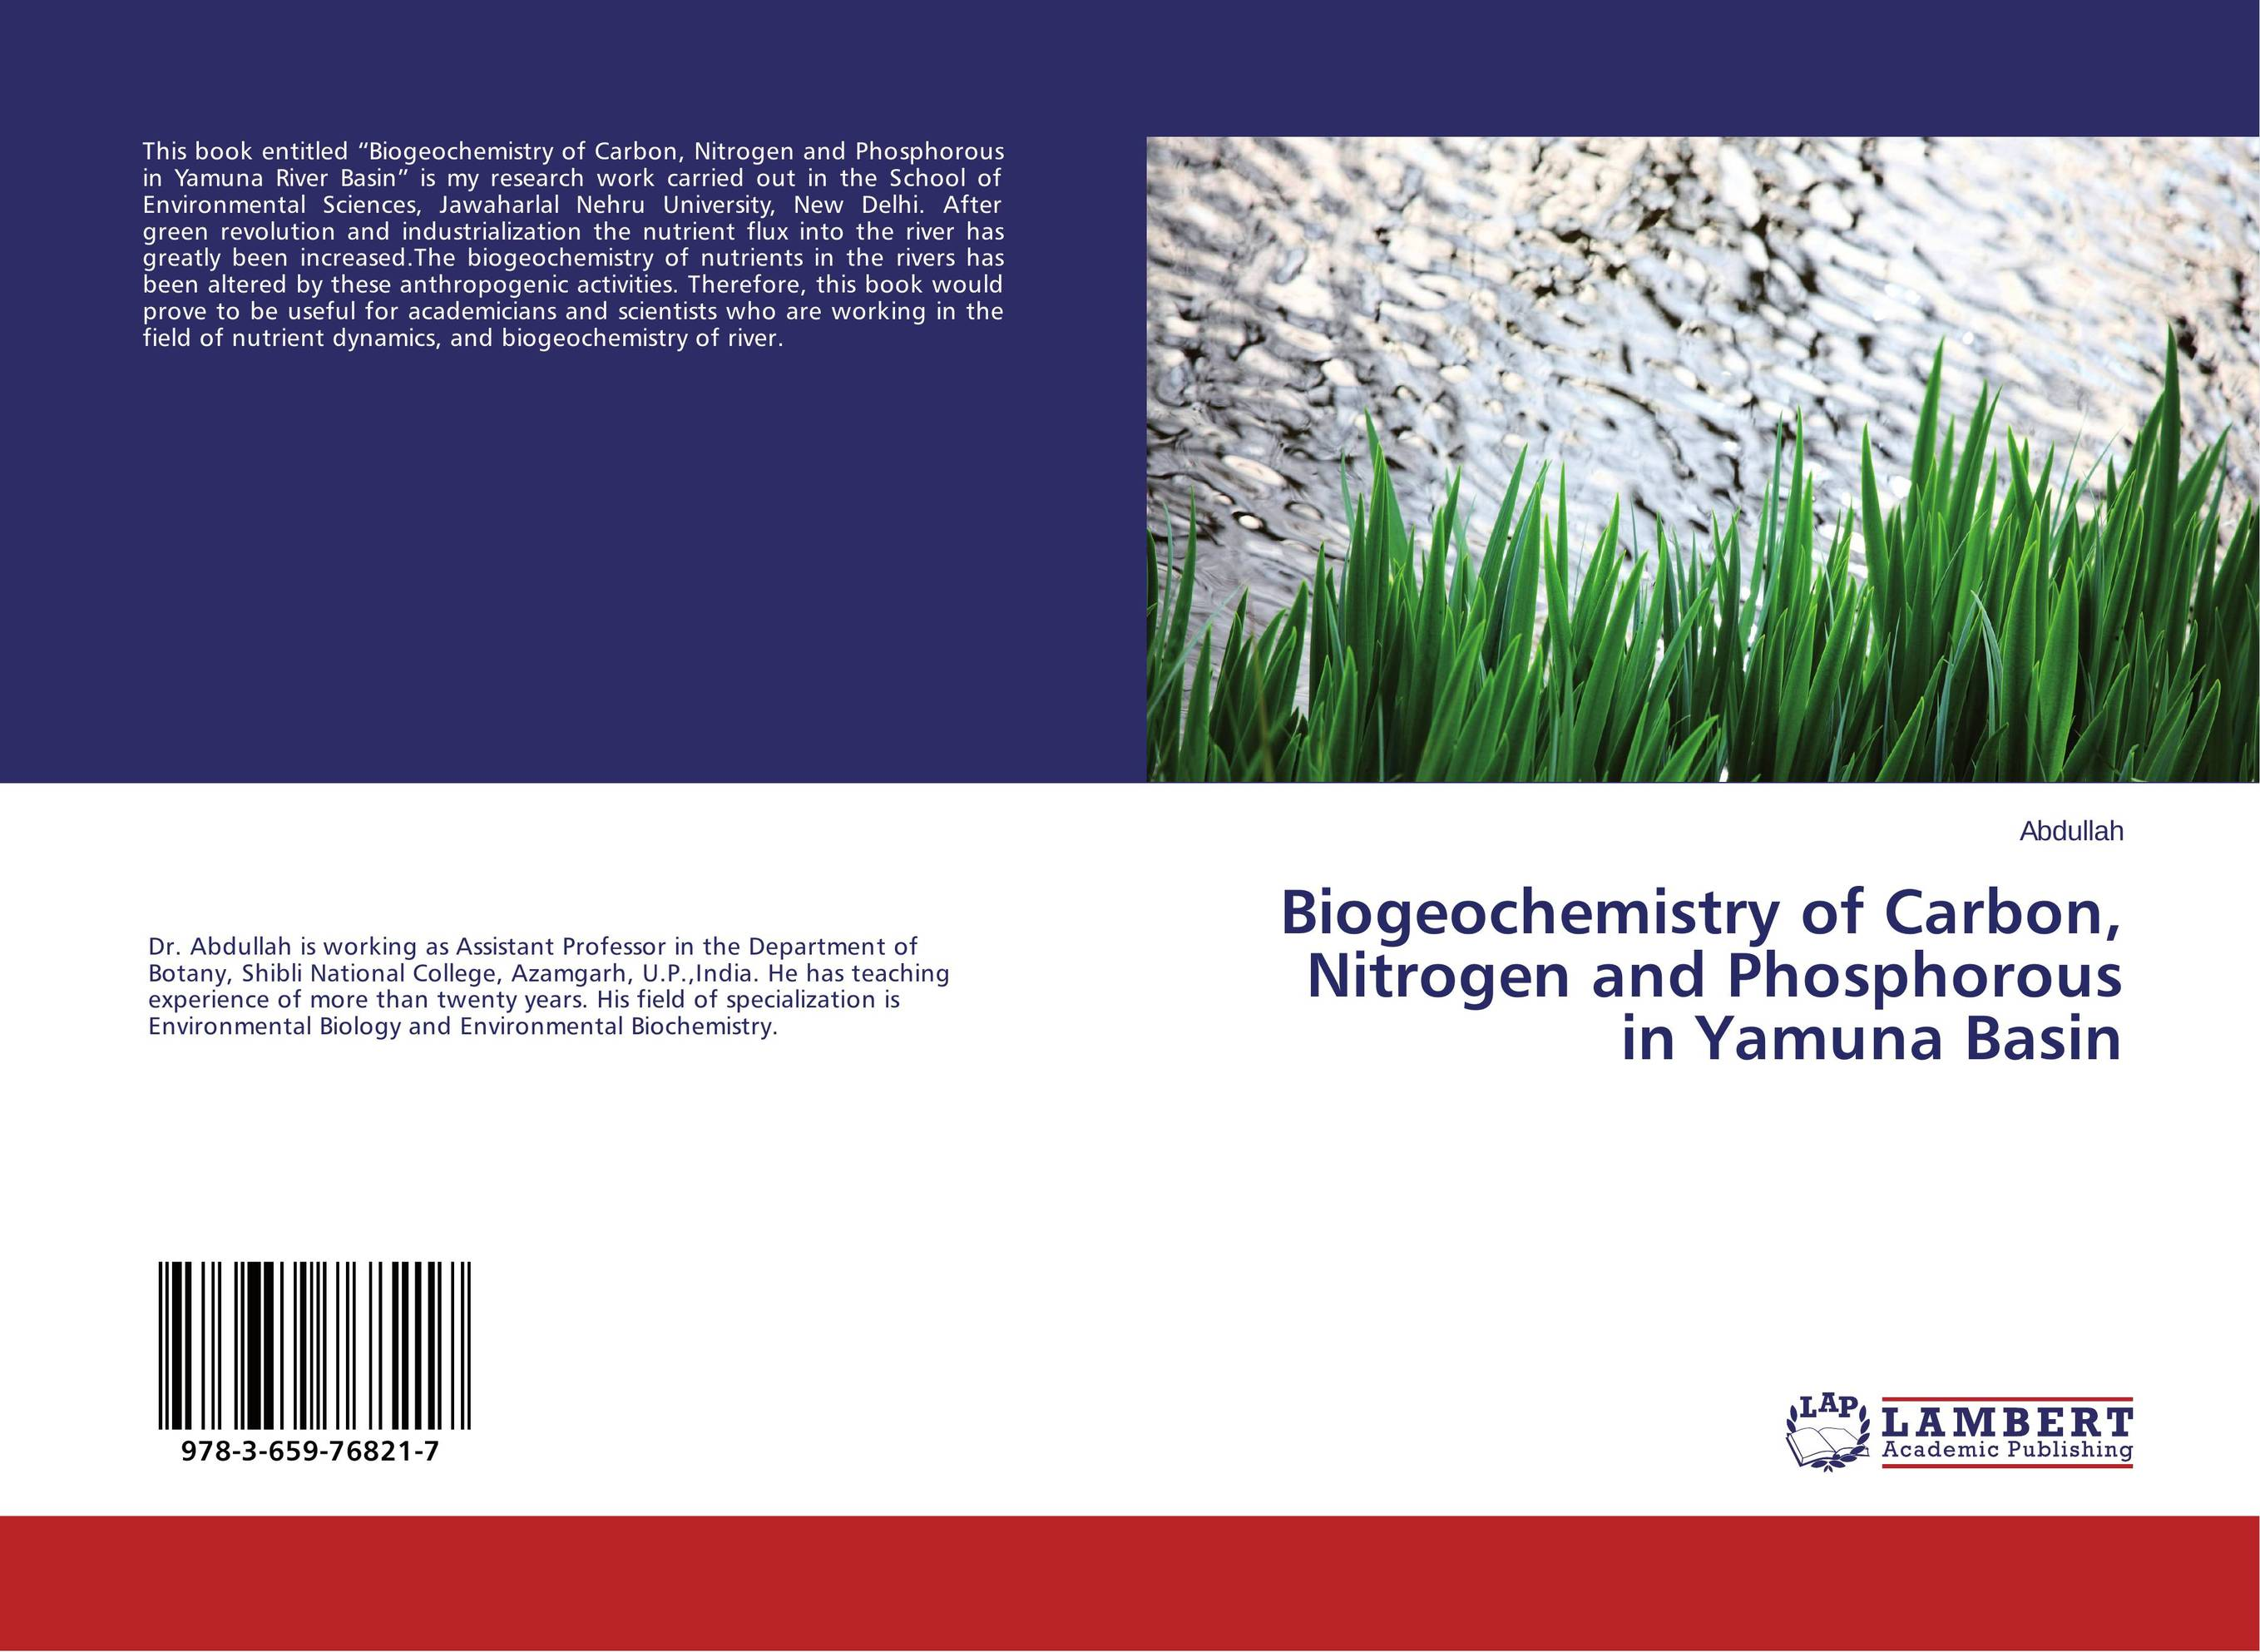 Biogeochemistry of Carbon, Nitrogen and Phosphorous in Yamuna Basin pastoralism and agriculture pennar basin india